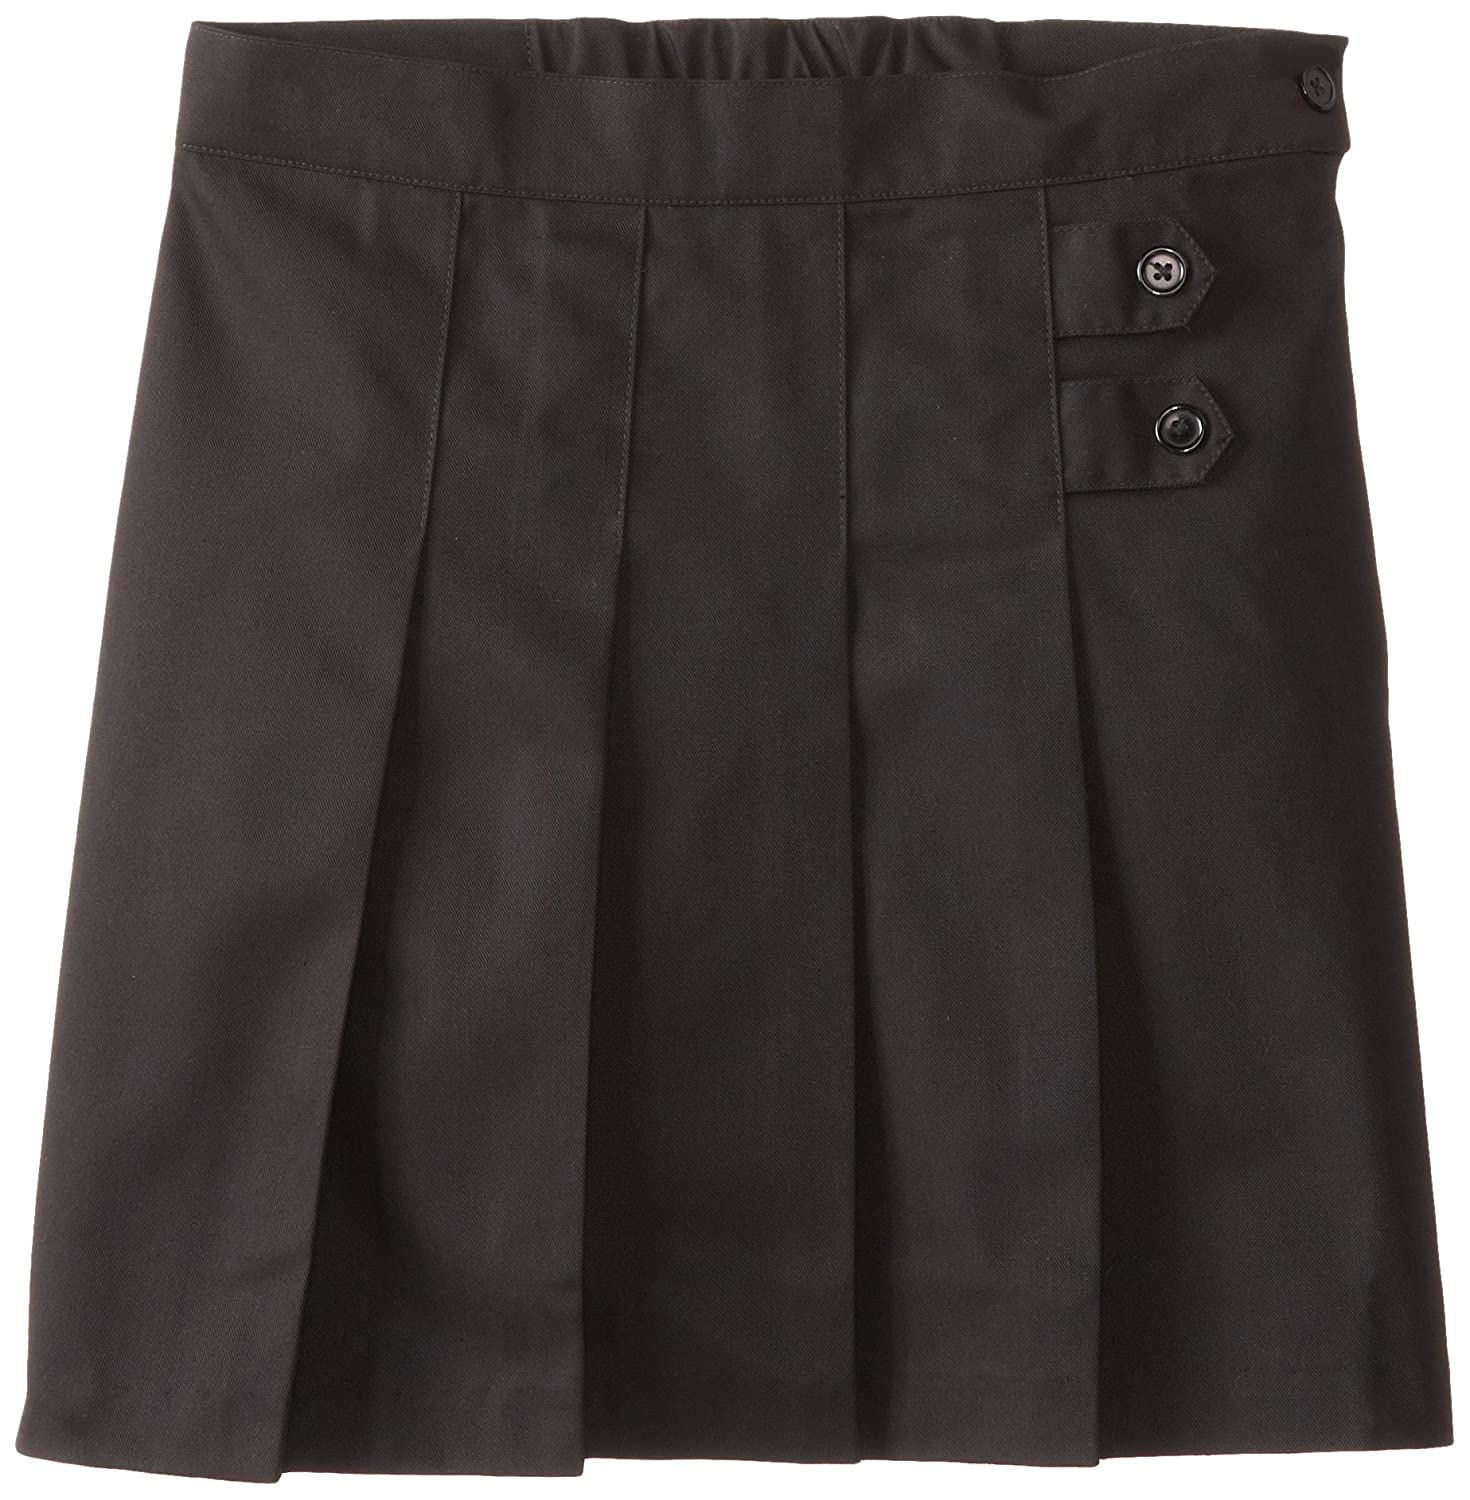 Black Twill Scooter School Uniform Skirt Plus Size Girls 18.5 55123-BLK